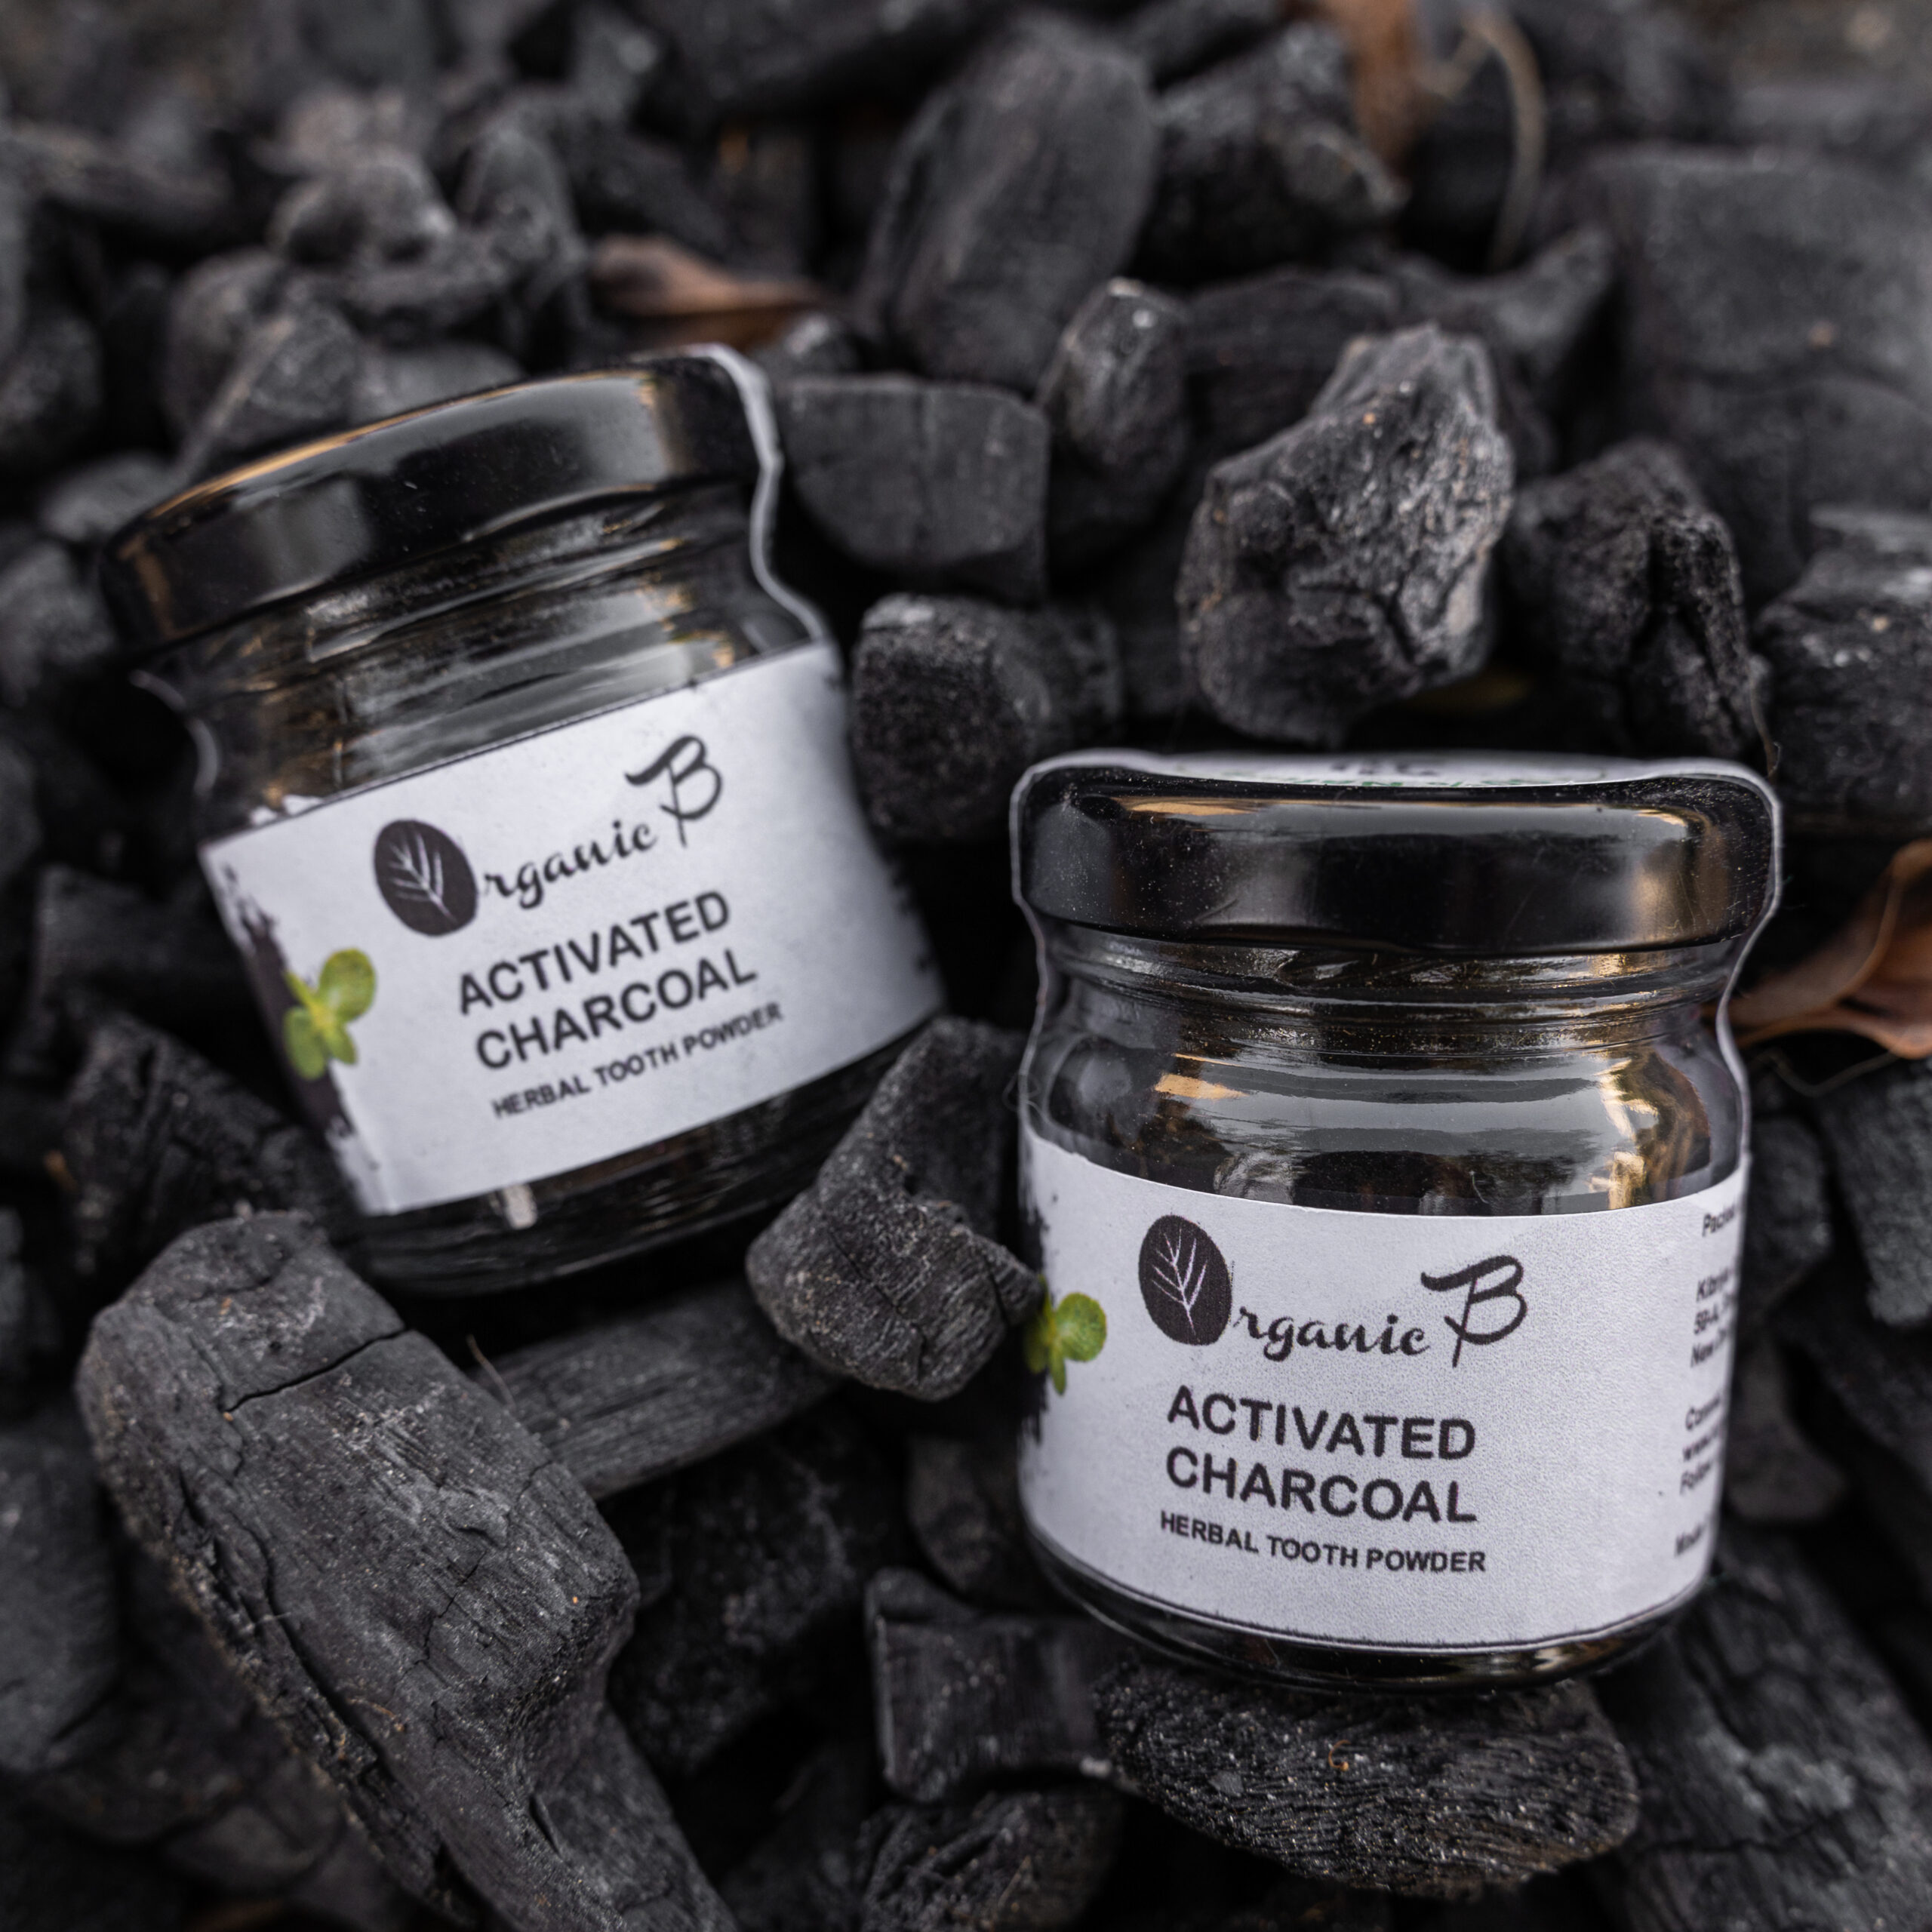 Charcoal Tooth Powder from Organic B